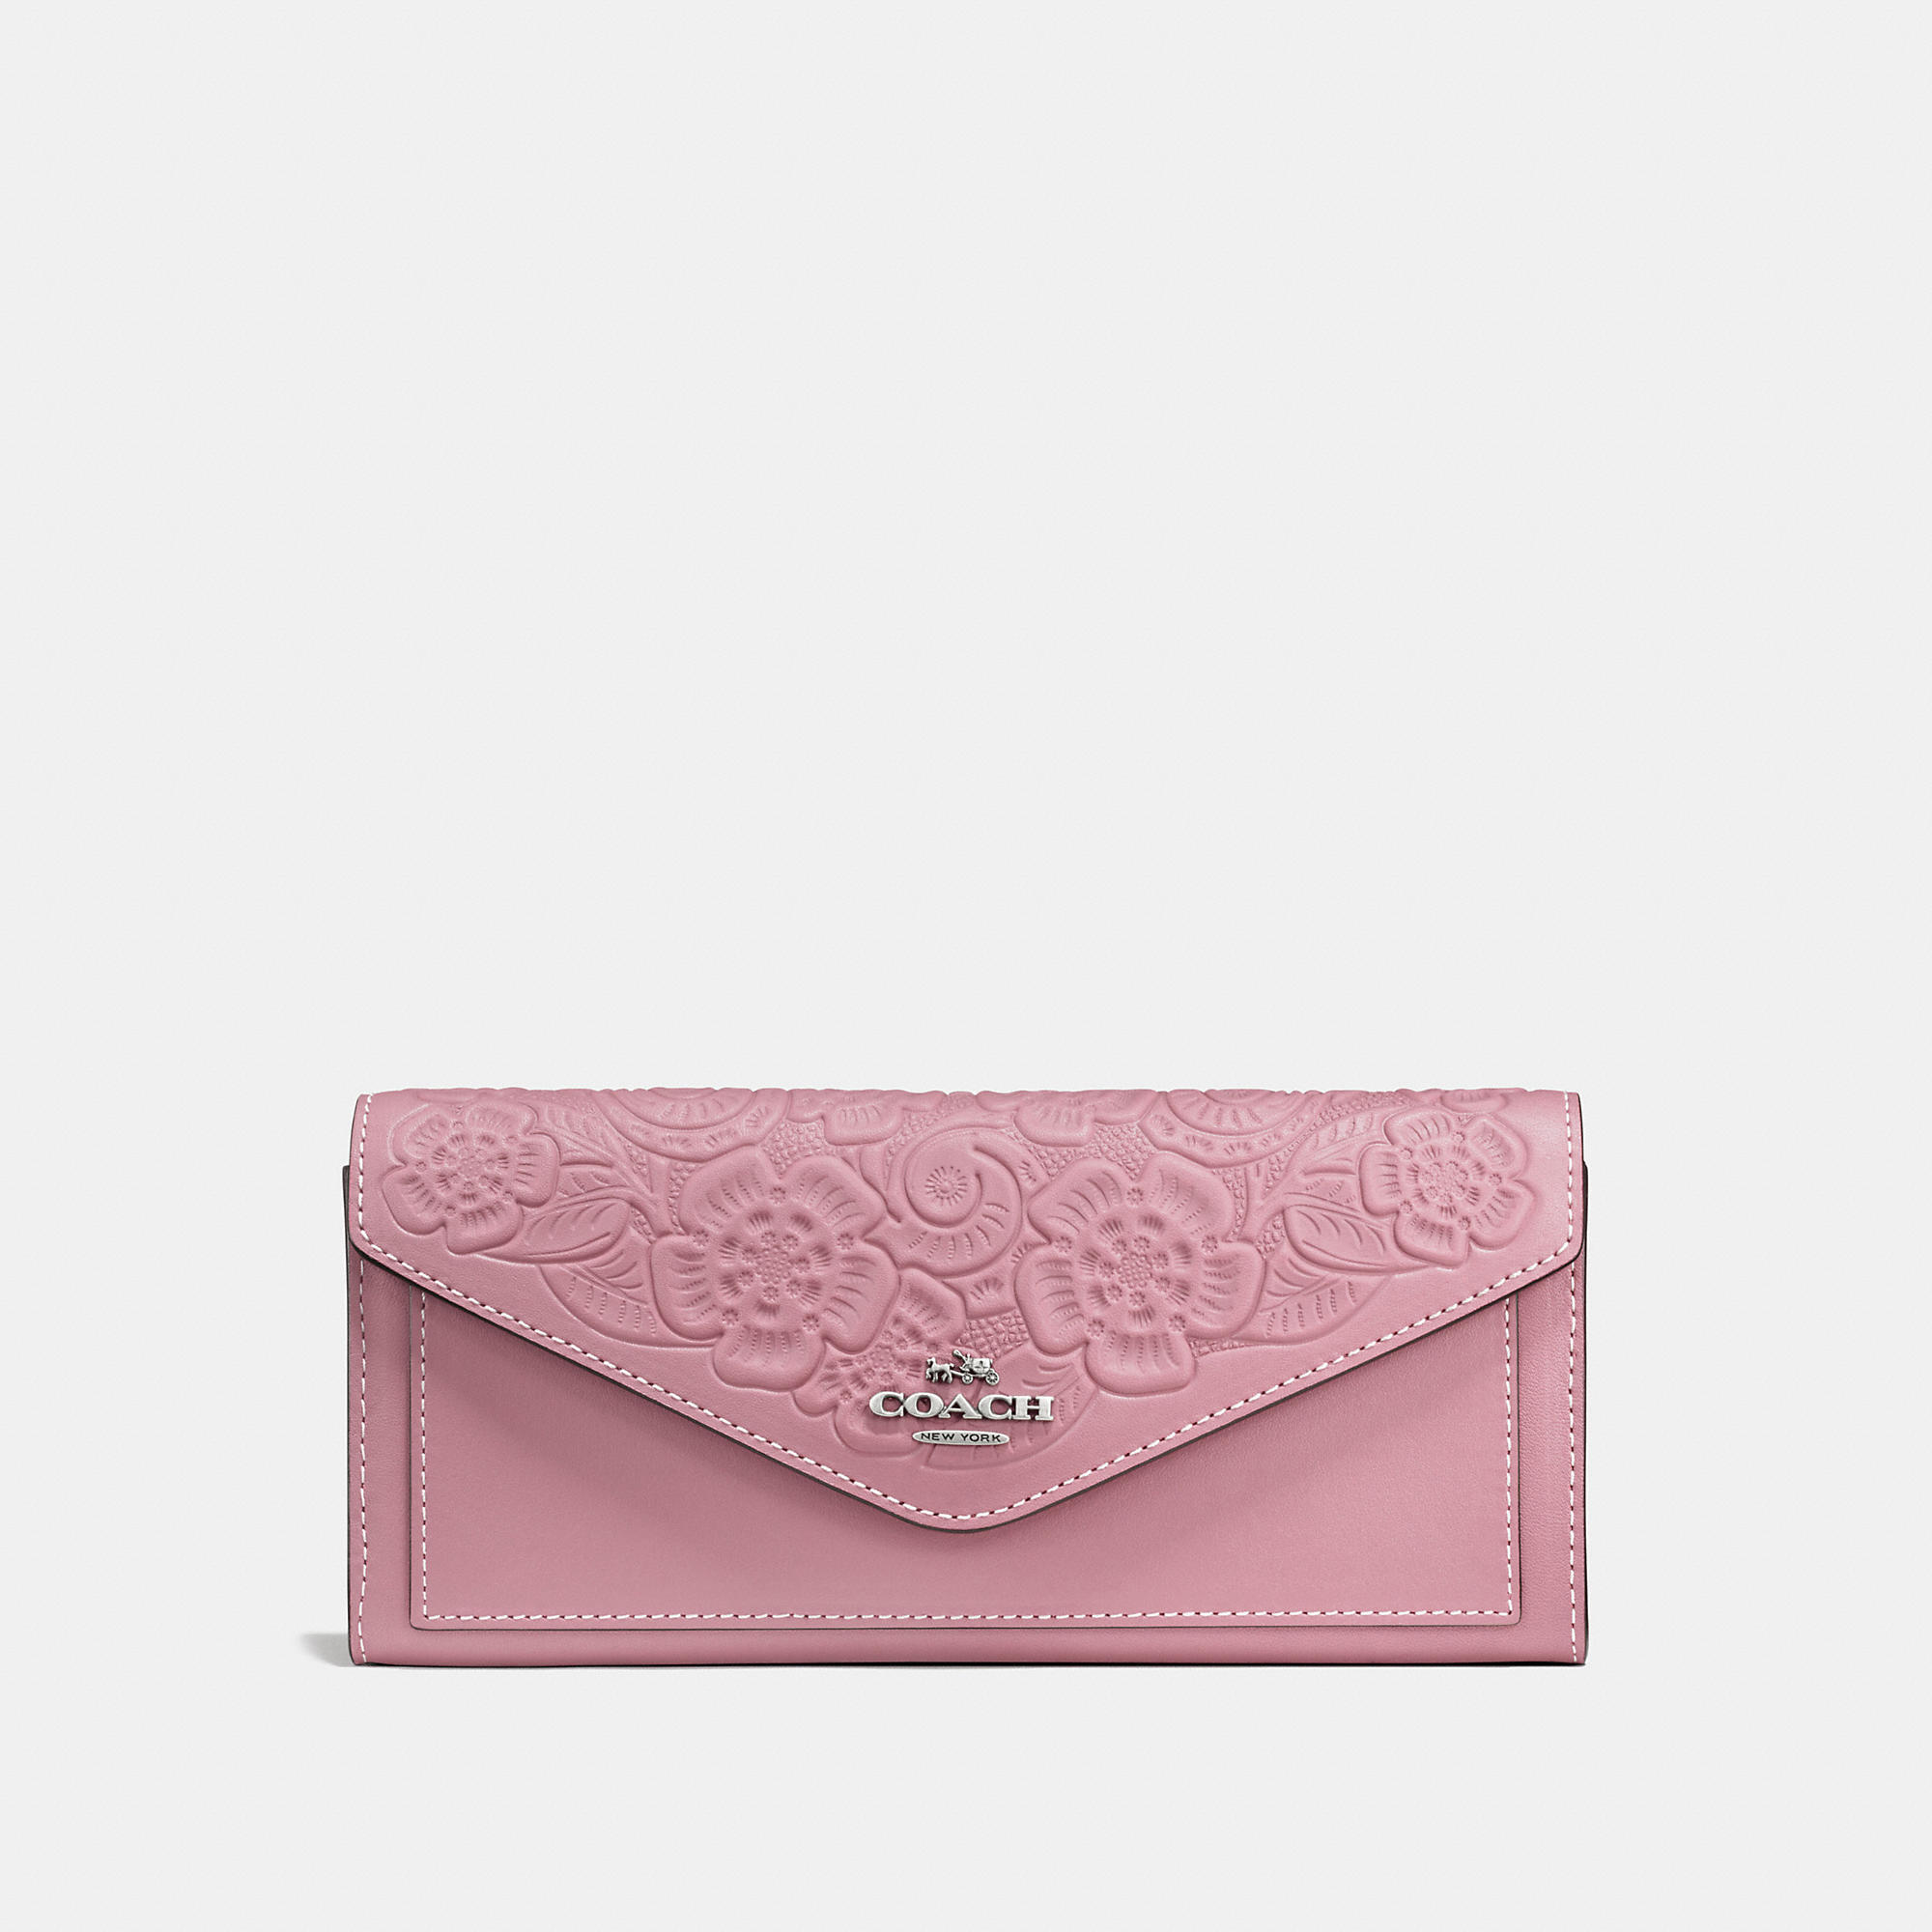 Coach Soft Wallet In Glovetanned Leather With Tea Rose Tooling